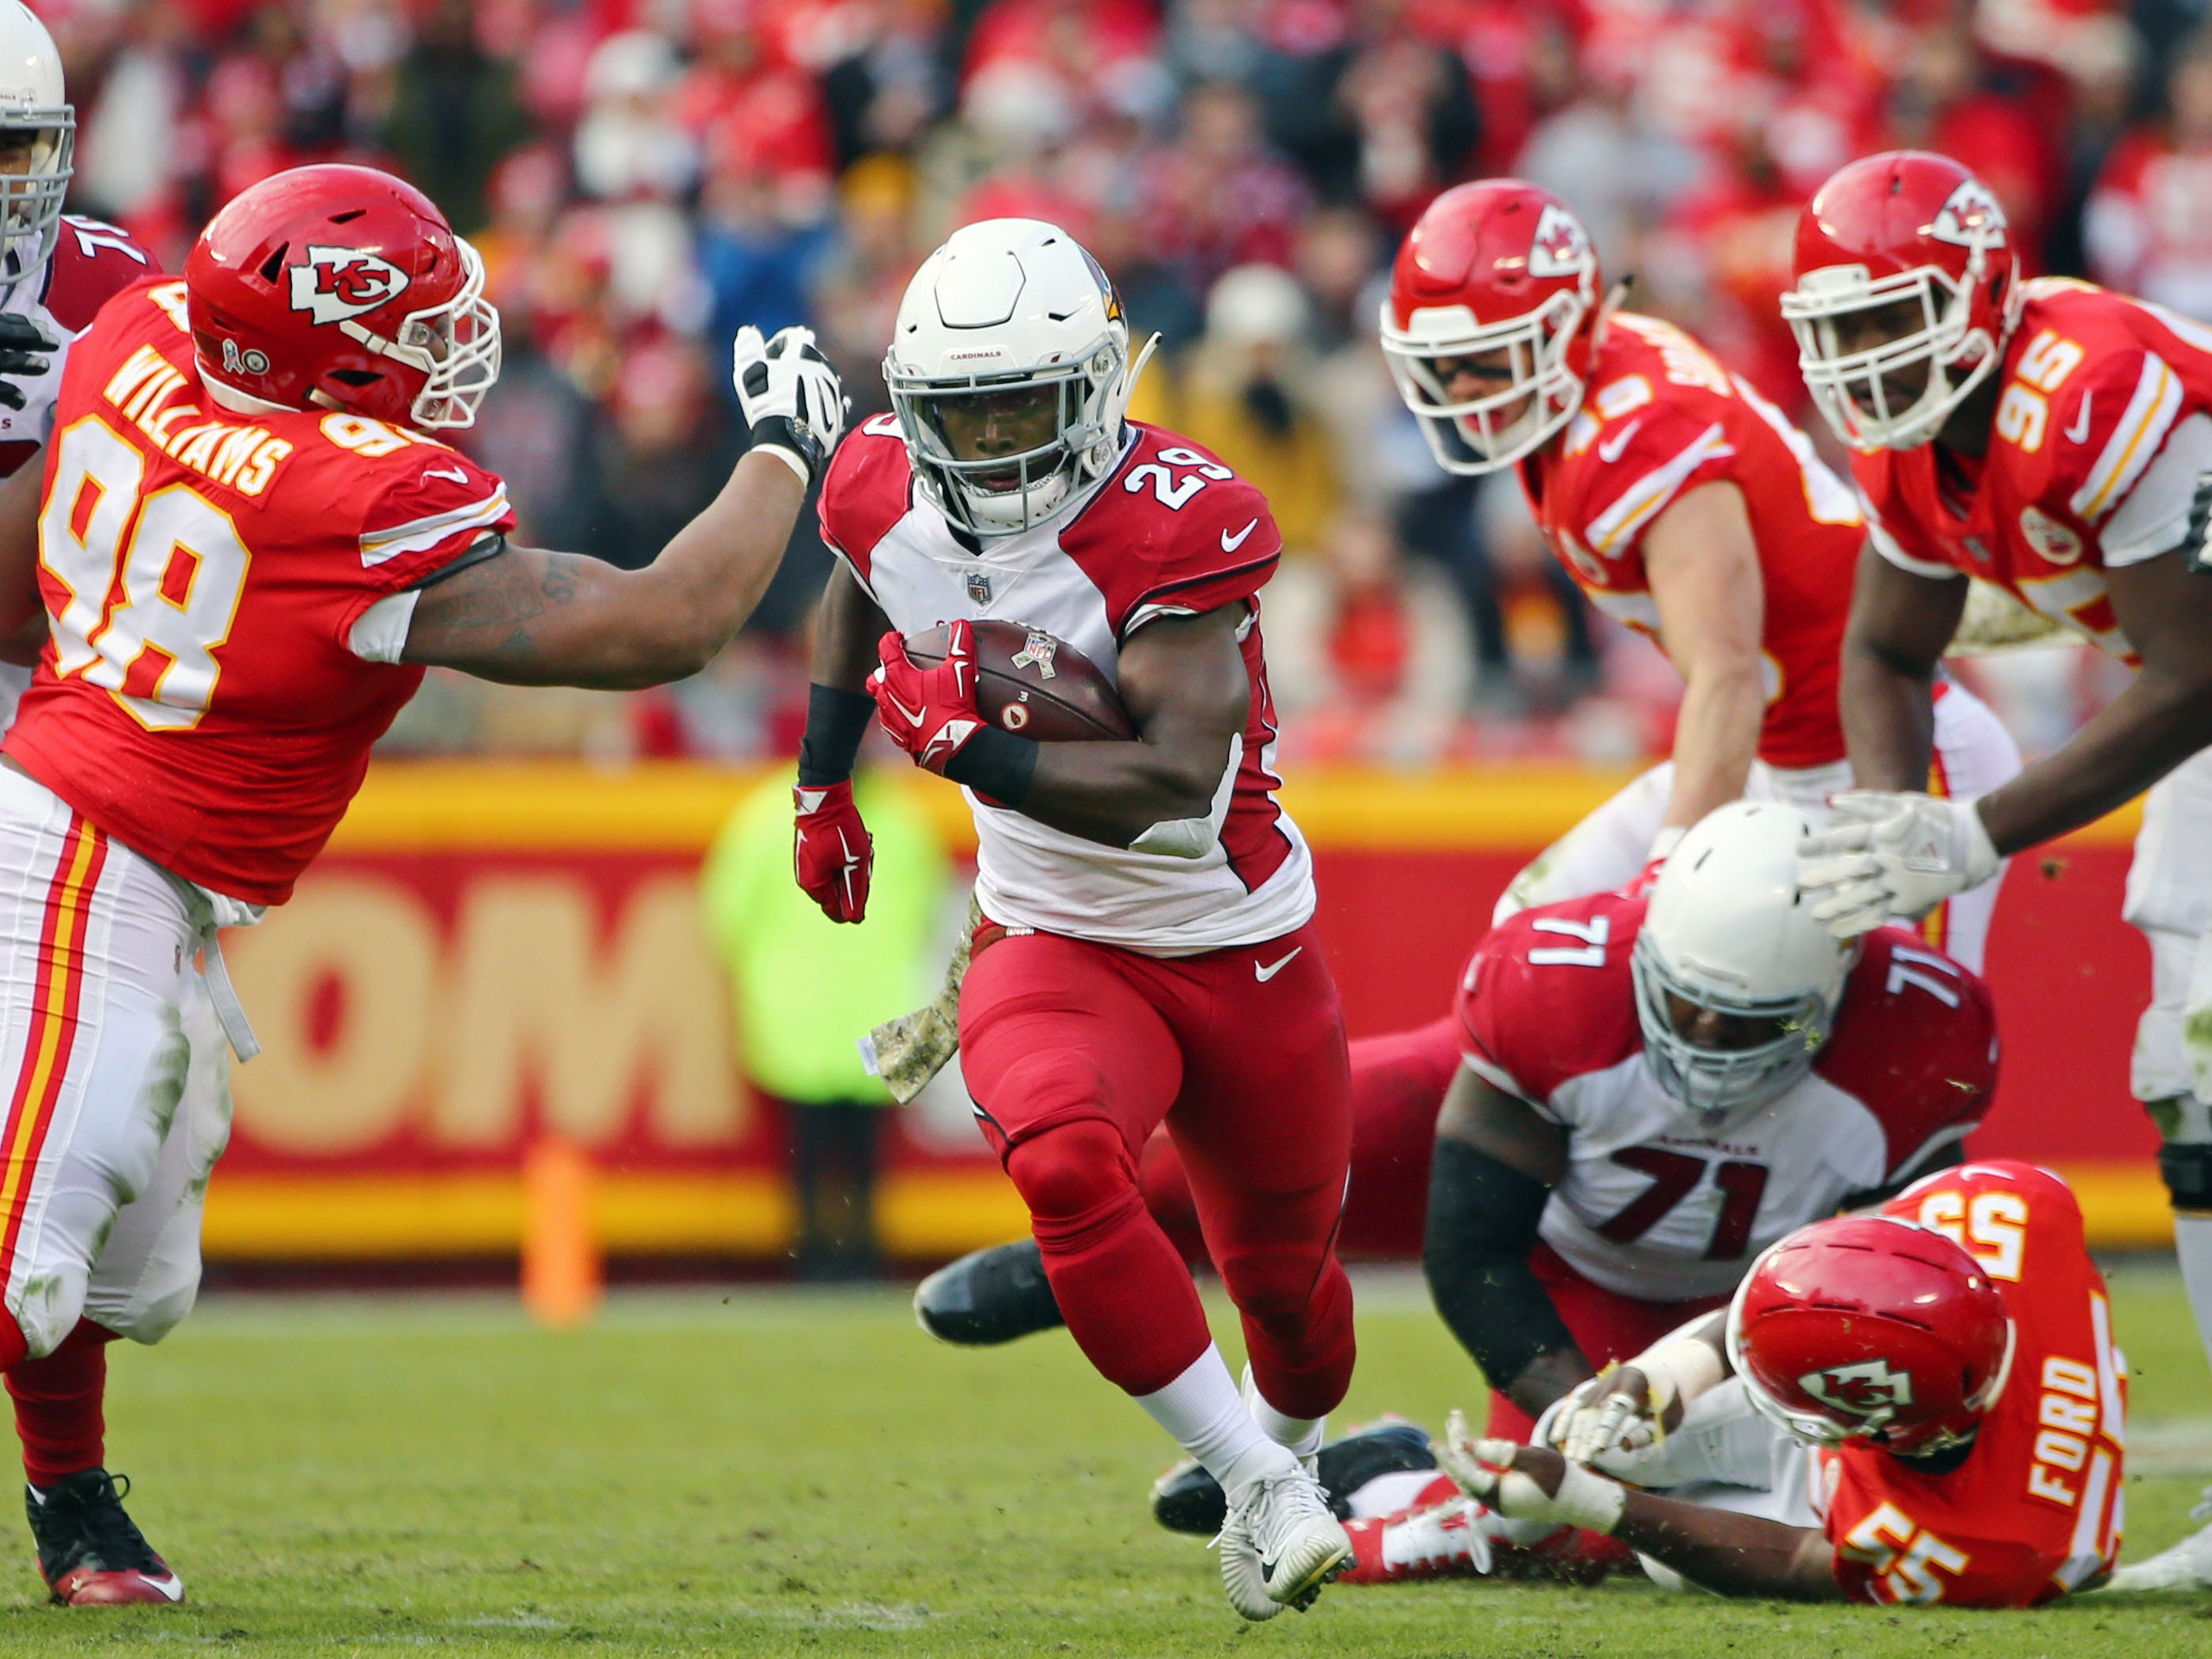 Nov 11, 2018; Kansas City, MO, USA; Arizona Cardinals running back Chase Edmonds (29) runs against Kansas City Chiefs defensive tackle Xavier Williams (98) in the second half at Arrowhead Stadium. Mandatory Credit: Jay Biggerstaff-USA TODAY Sports